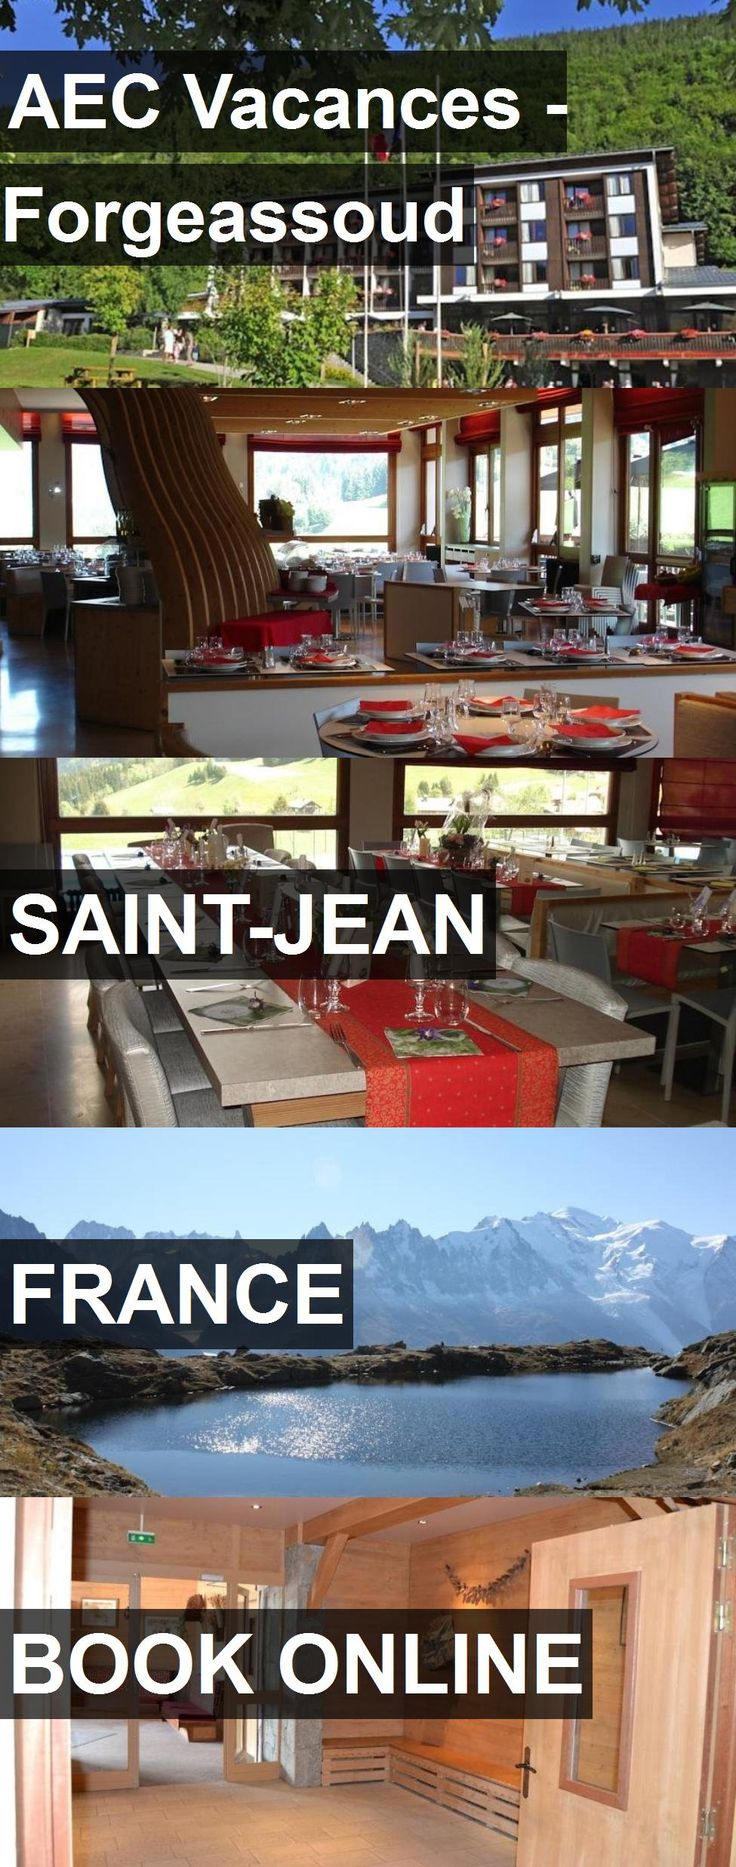 Hotel AEC Vacances - Forgeassoud in Saint-Jean, France. For more information, photos, reviews and best prices please follow the link. #France #Saint-Jean #AECVacances-Forgeassoud #hotel #travel #vacation